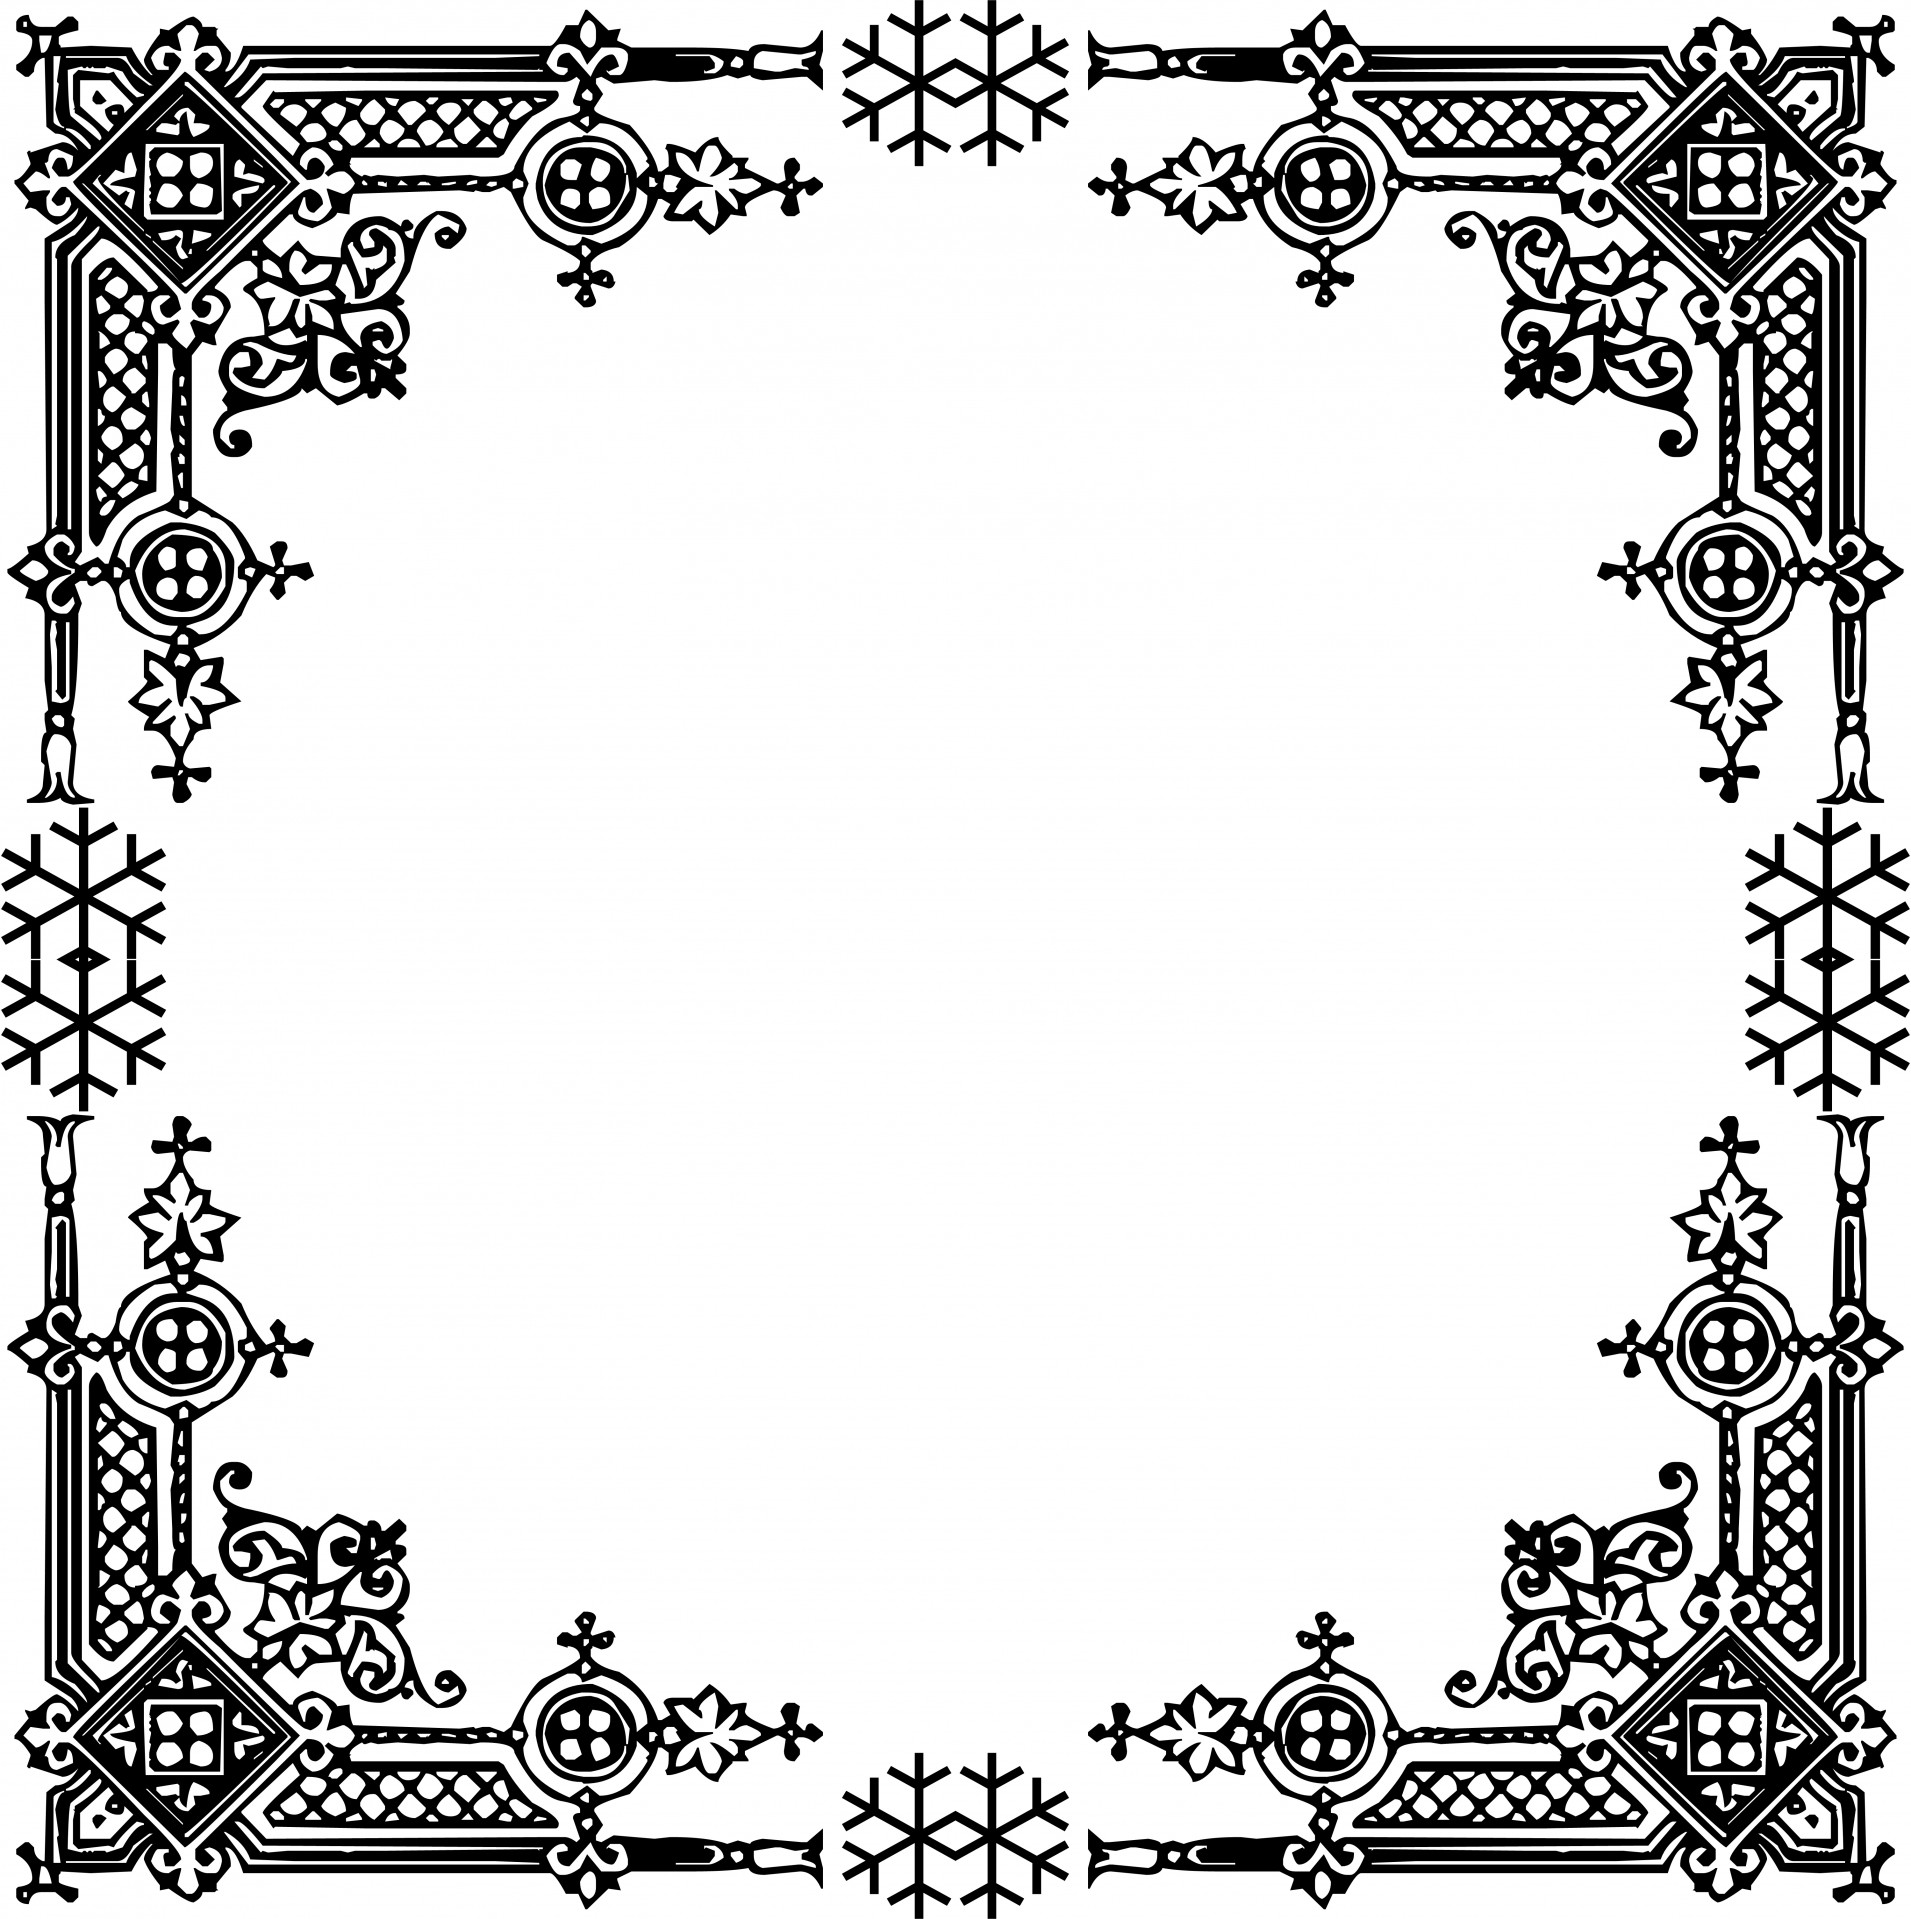 Black Baroque Frame On White Background Royalty Free Cliparts